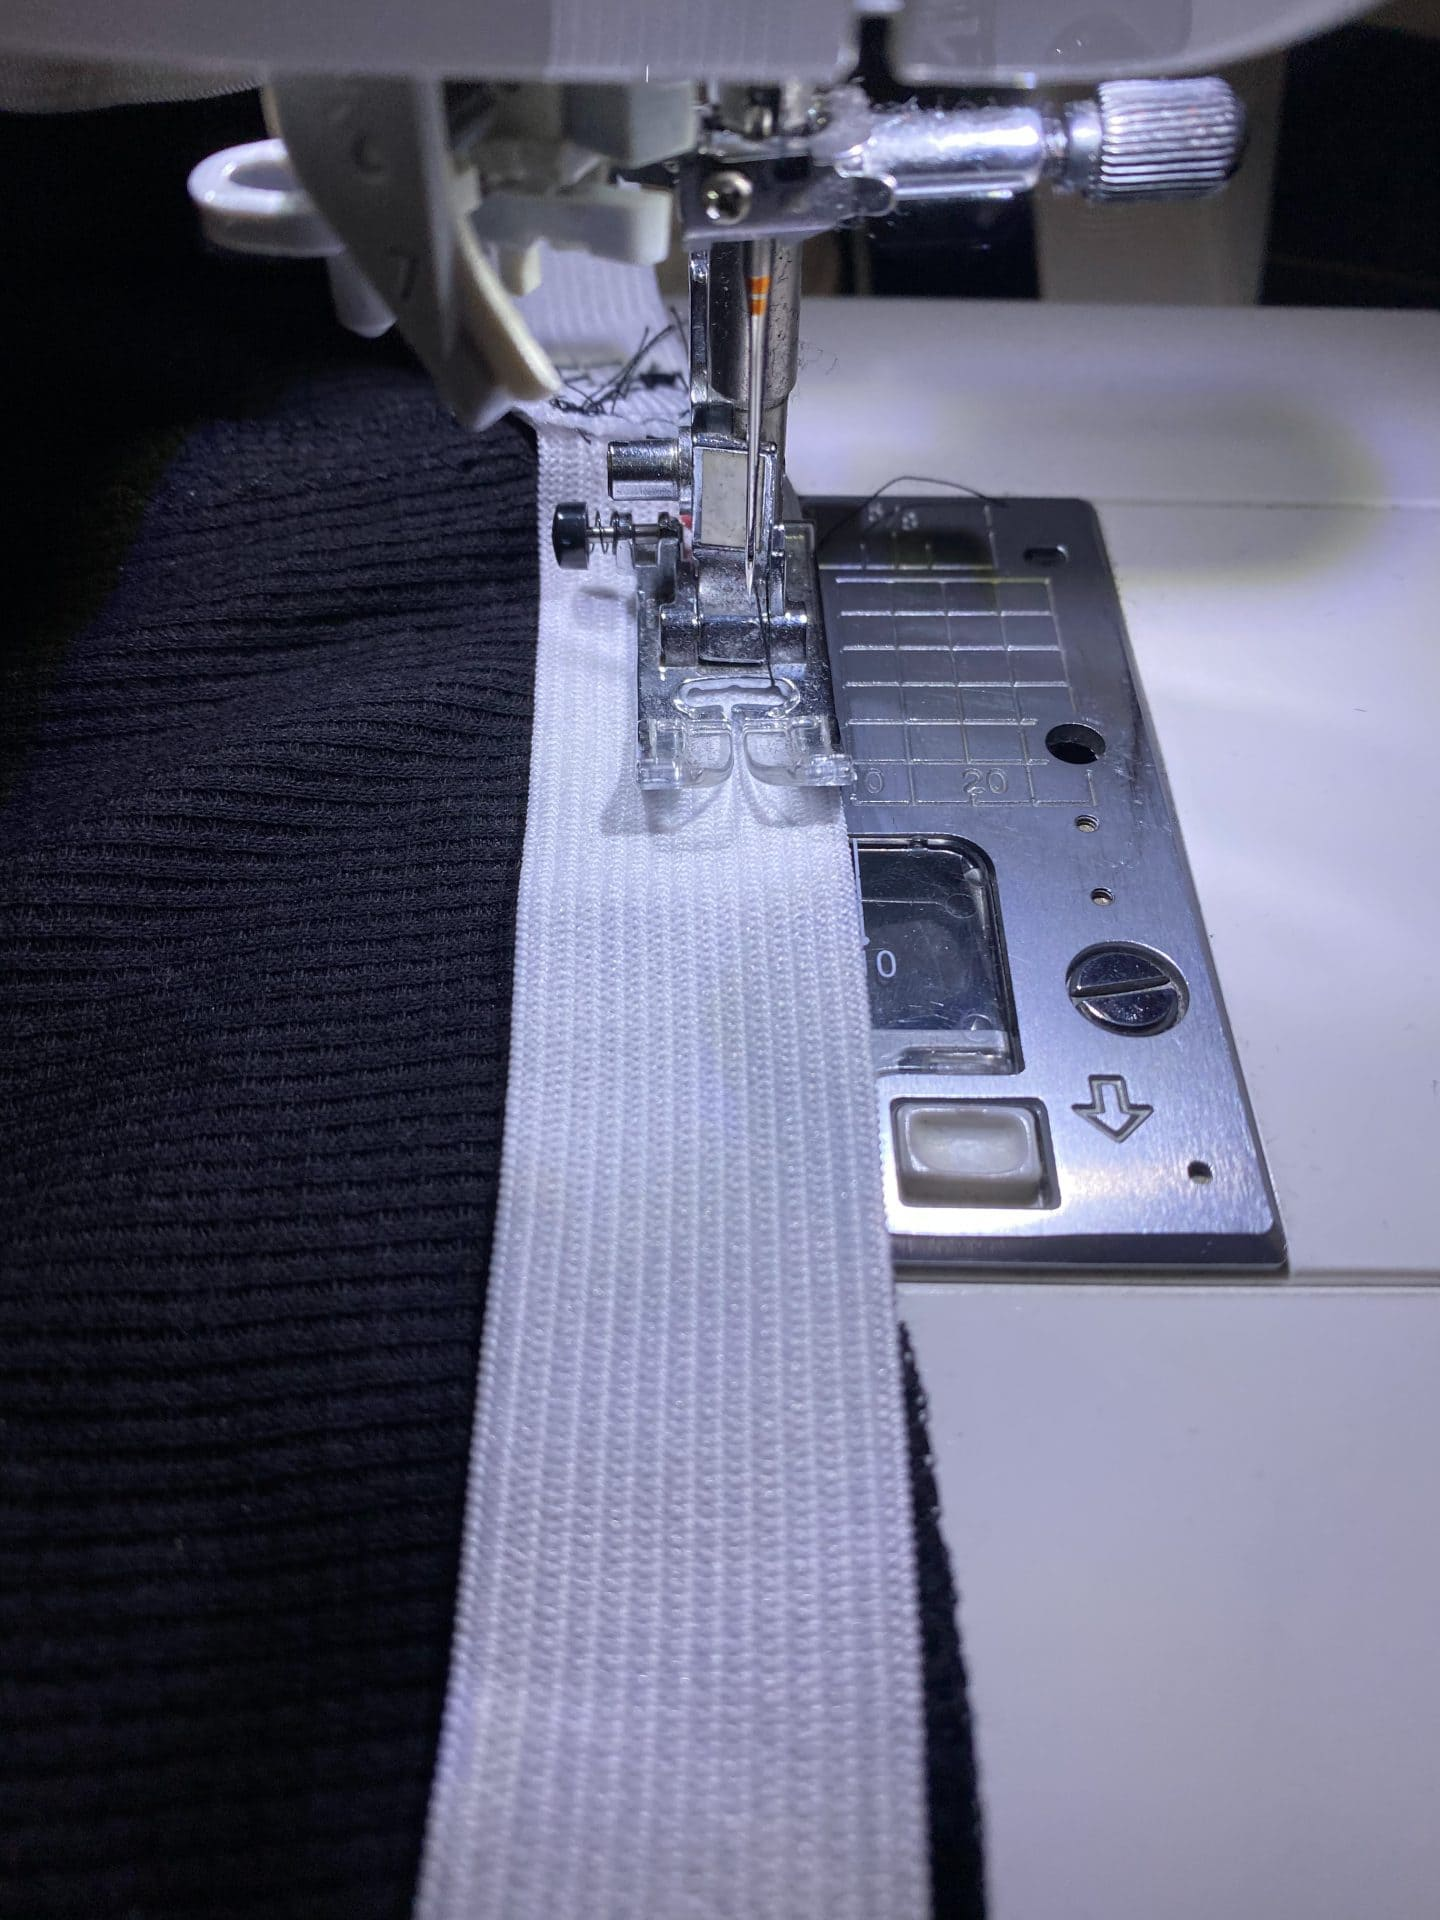 Detail image of a sewing machine with a piece of elastic being sewn to the edge of a black piece of fabric